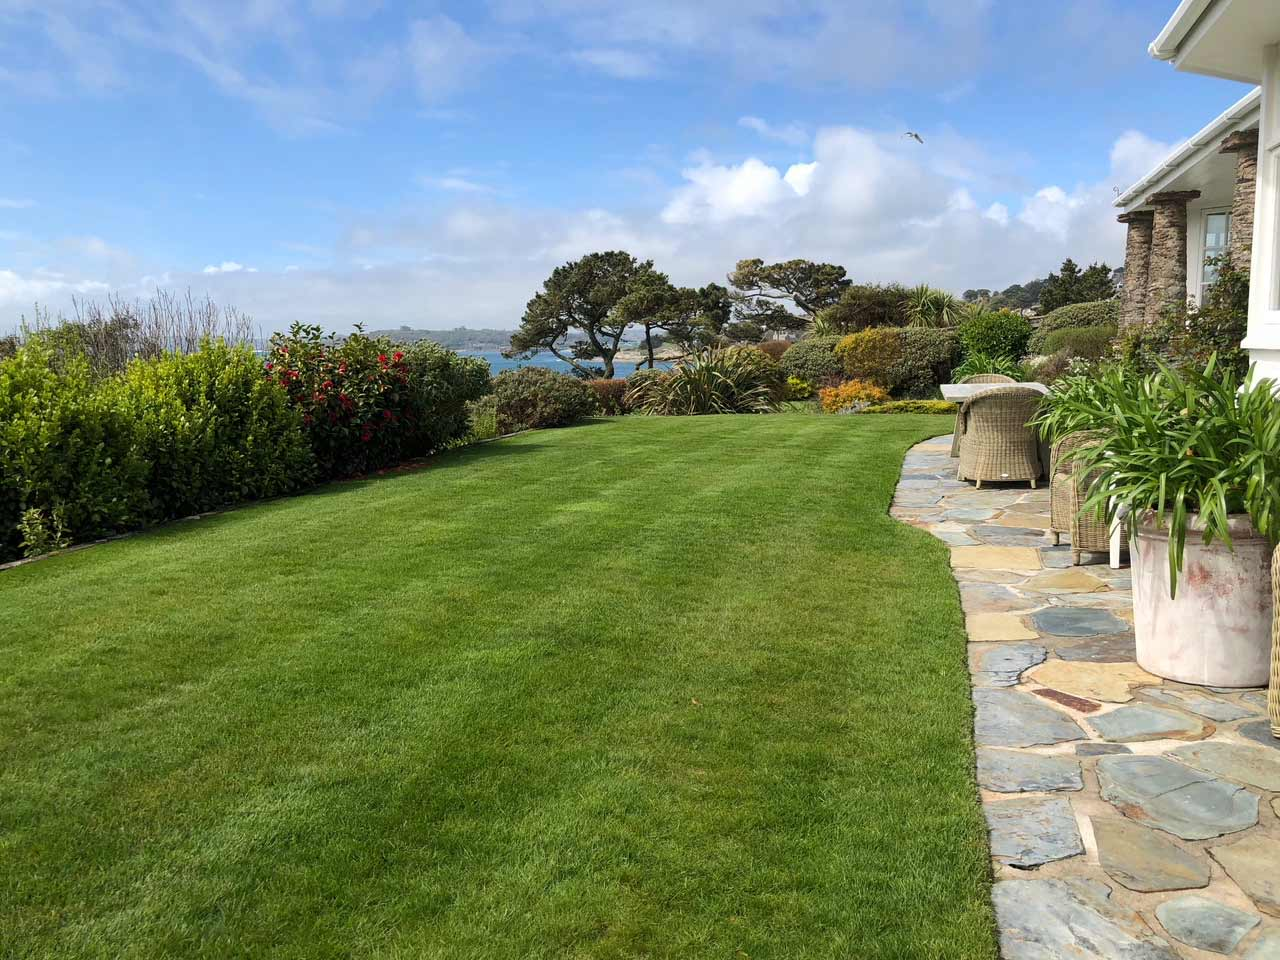 Perfect client lawn from Cornwall Lawn Care services